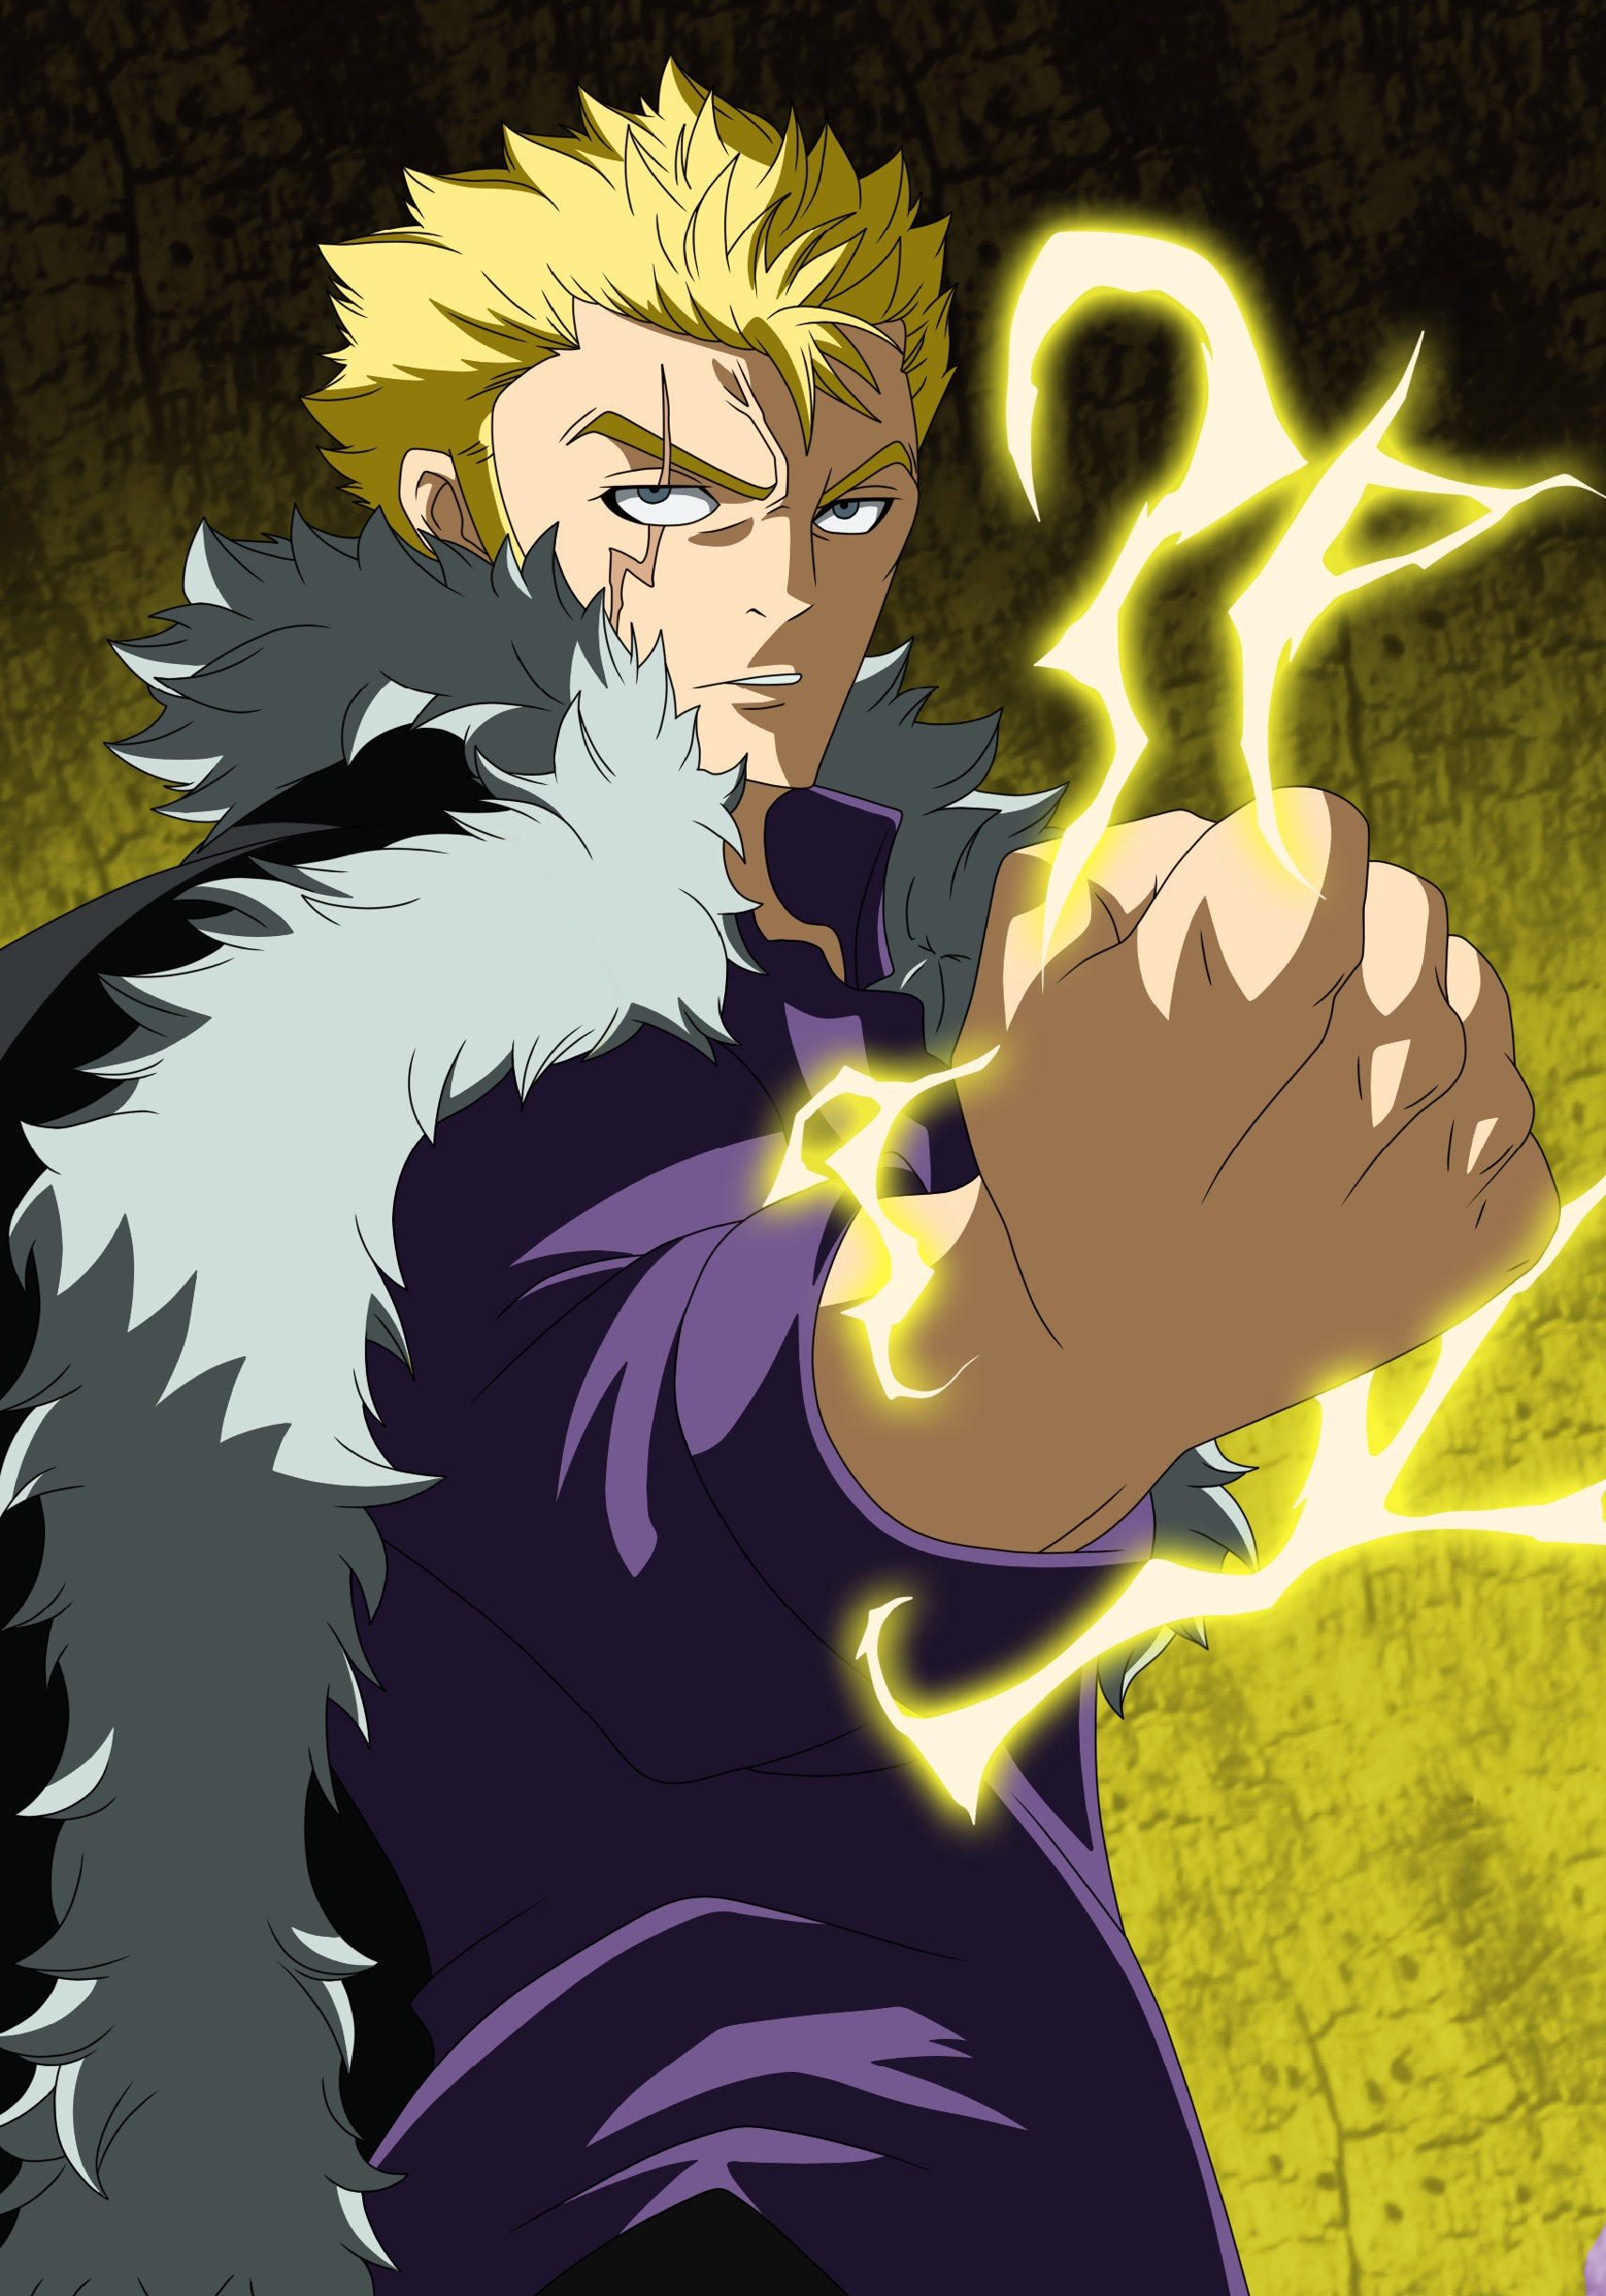 Image - Laxus dreyar fairy tail 357 by rogerwolf27-d6s7oh4 ...